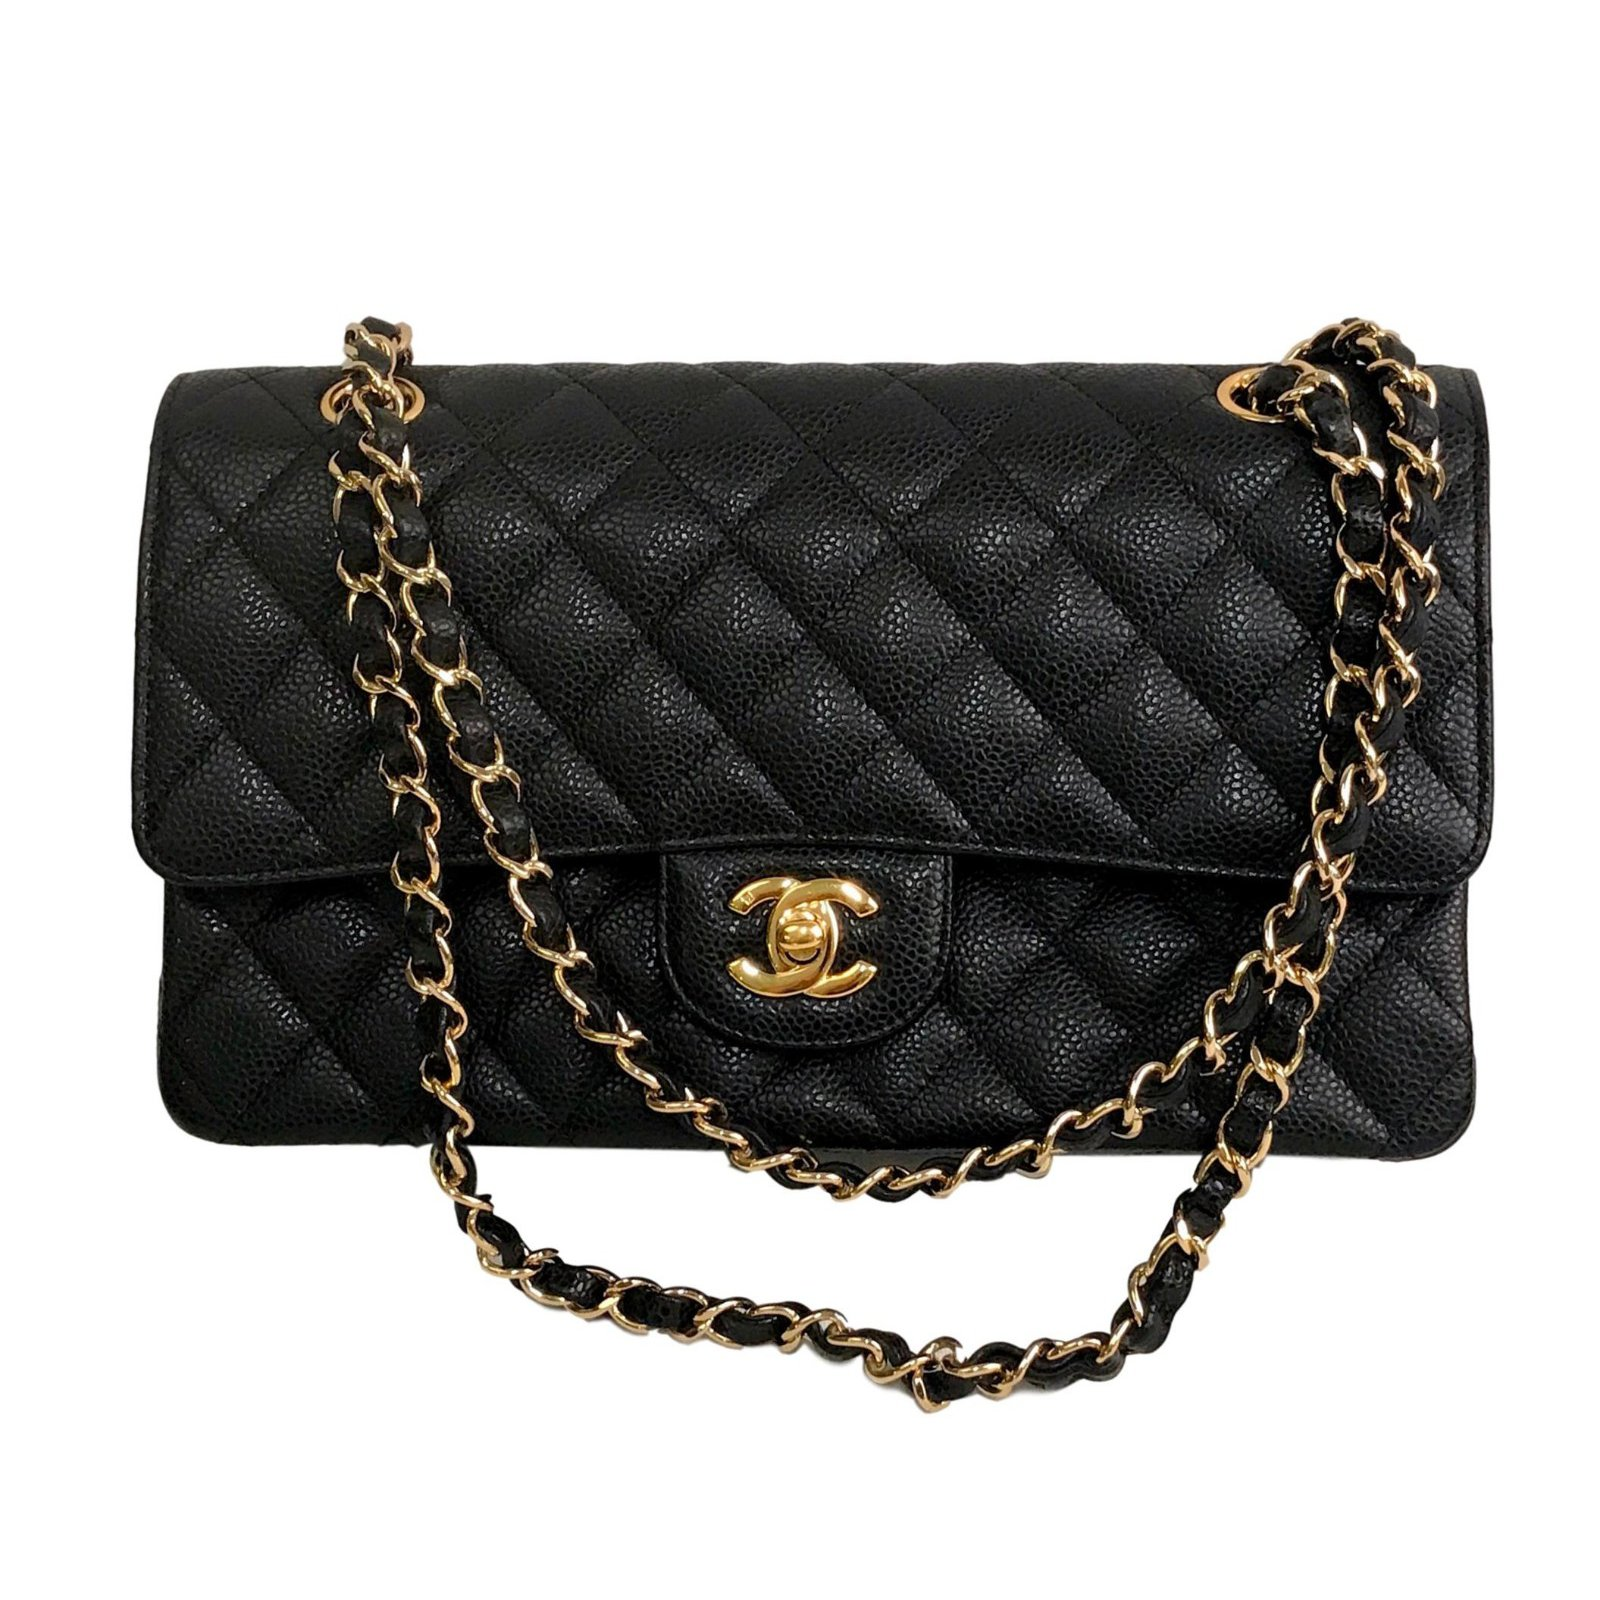 Chanel Caviar Double Flap Medium Bag Handbags Leather Black Ref 76707